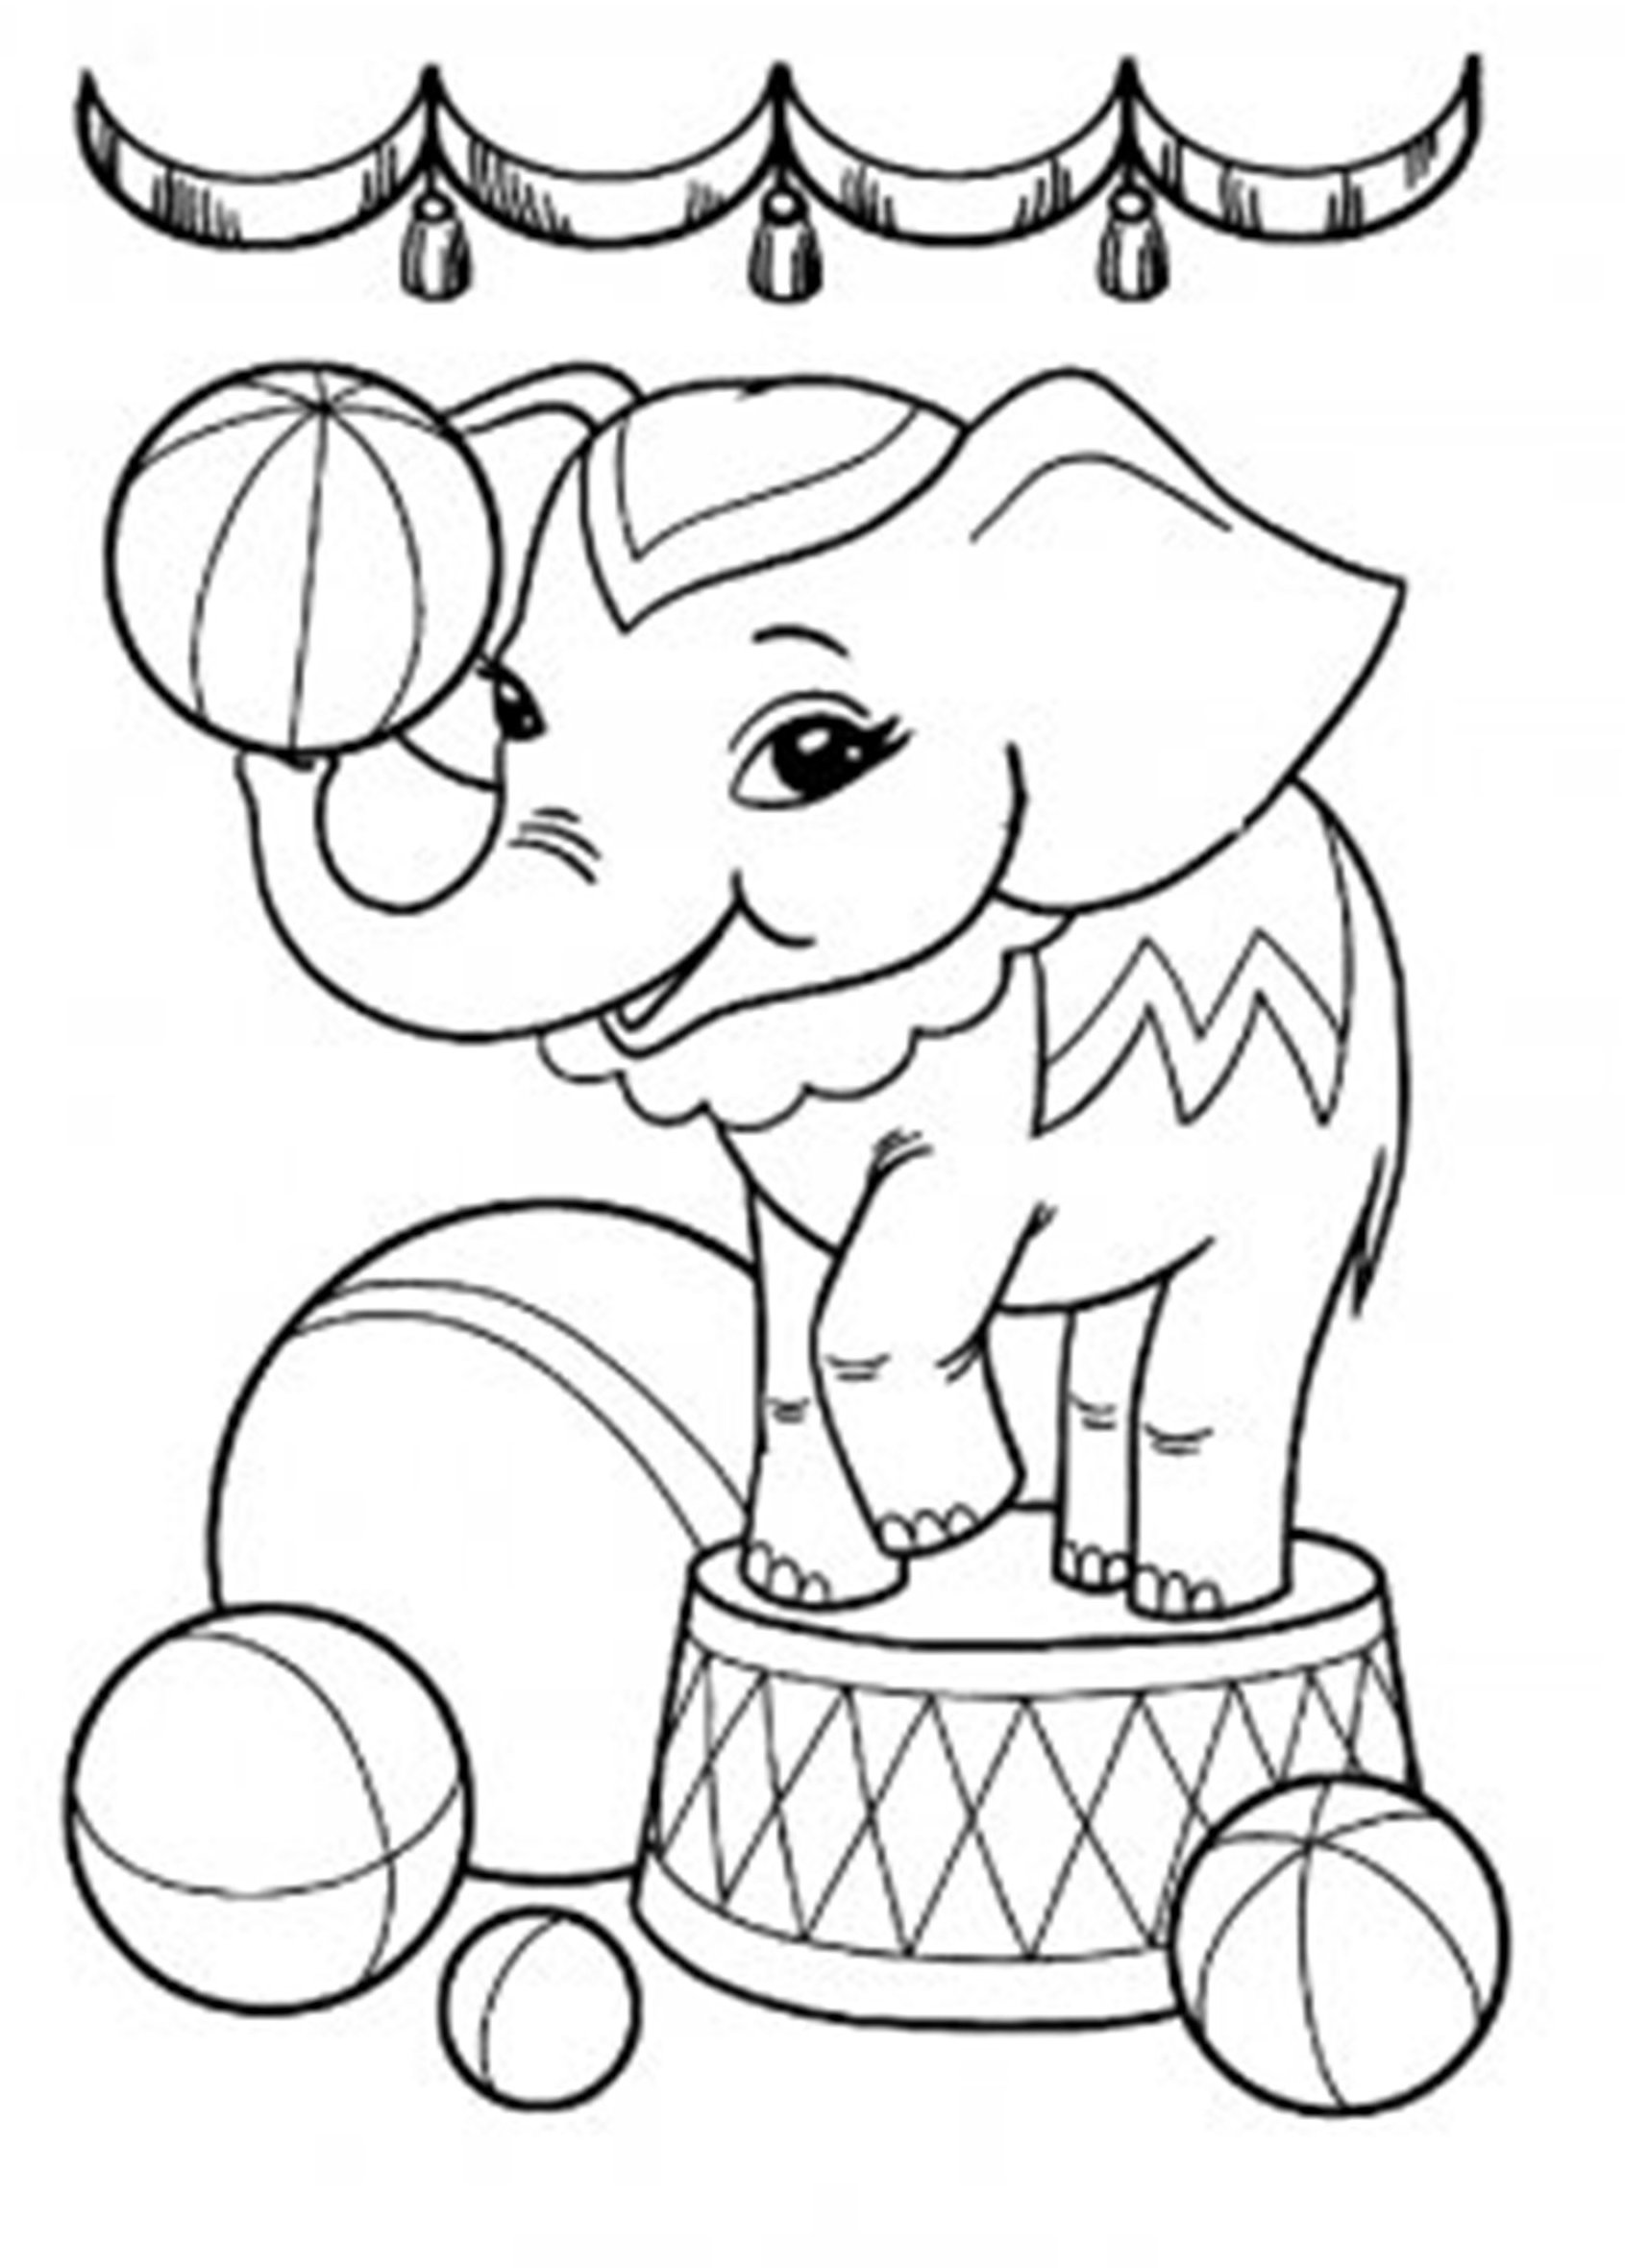 coloring printable kids christmas bunny coloring pages at getcoloringscom free kids printable coloring